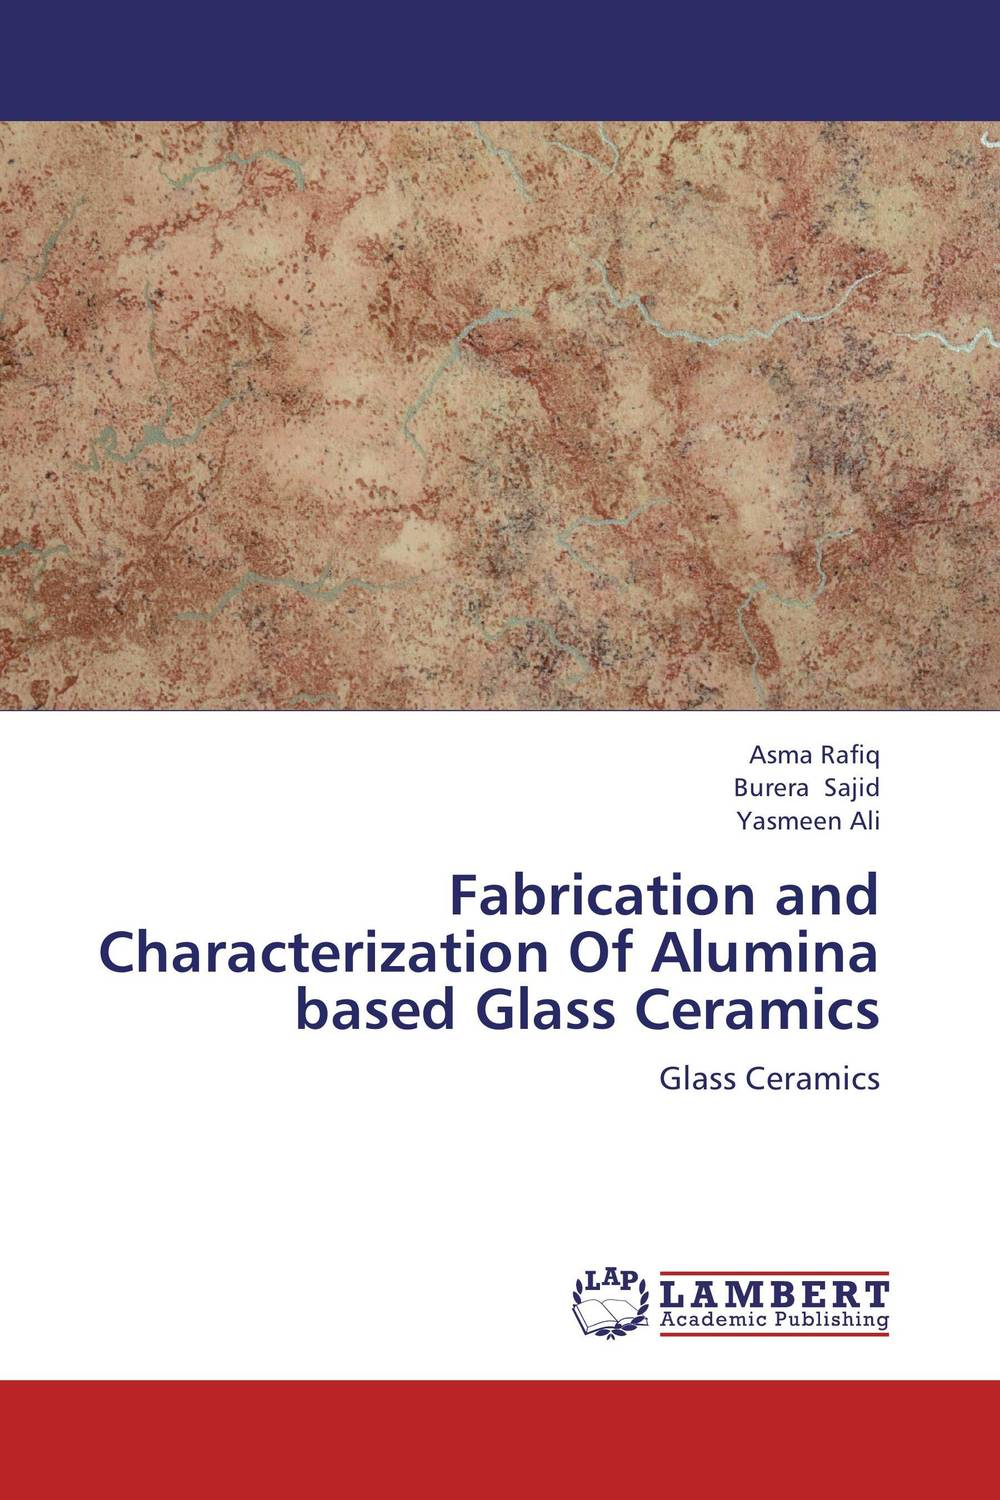 цены Fabrication and Characterization Of Alumina based Glass Ceramics